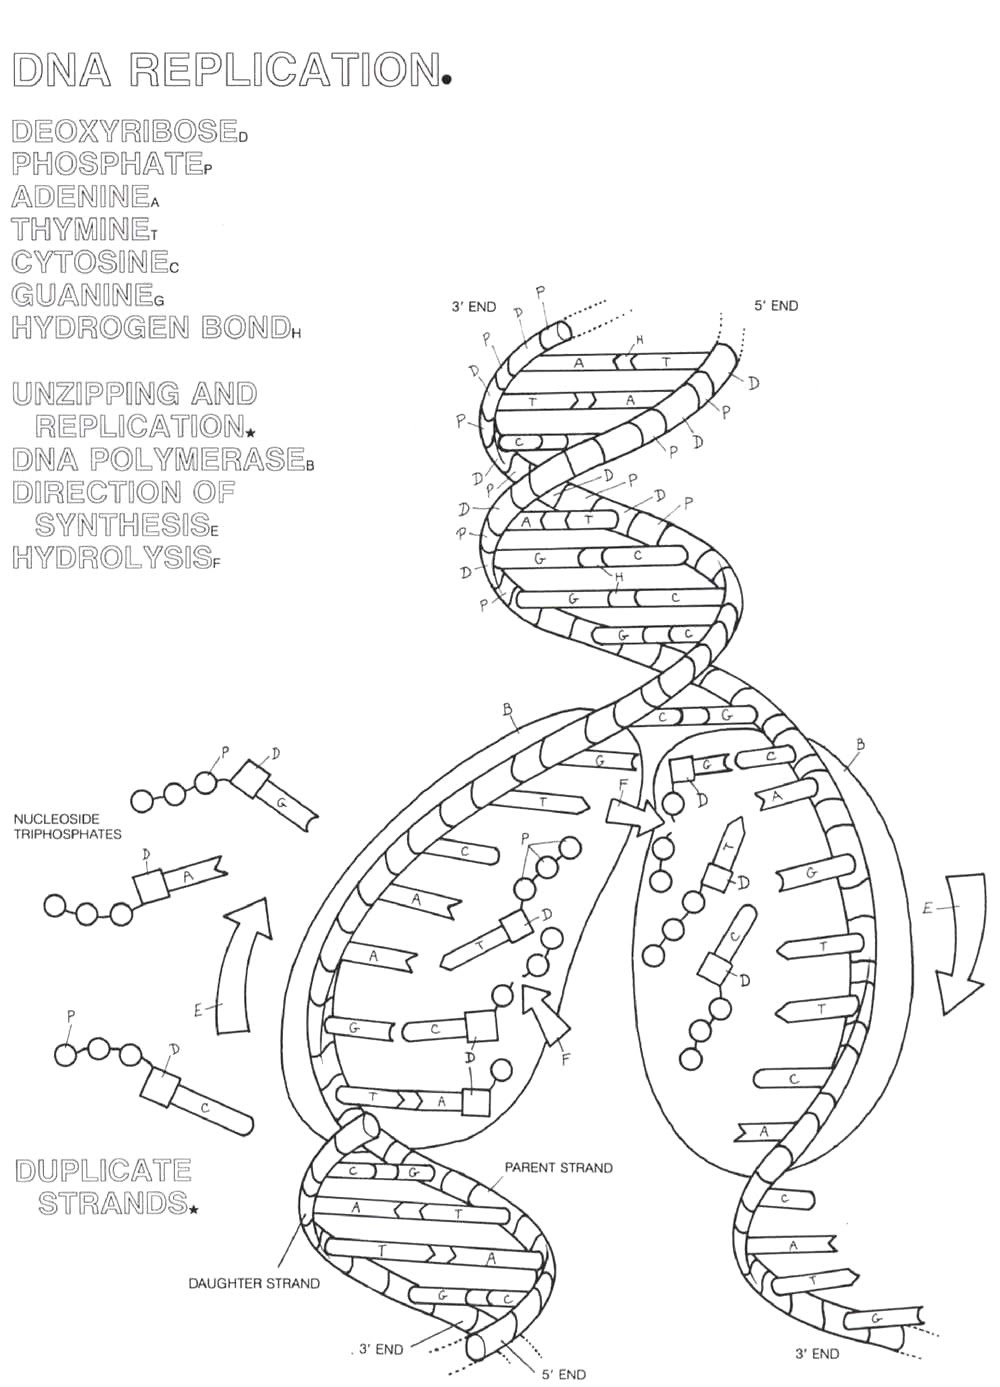 13 Best Images of The DNA Double Helix Coloring Worksheet